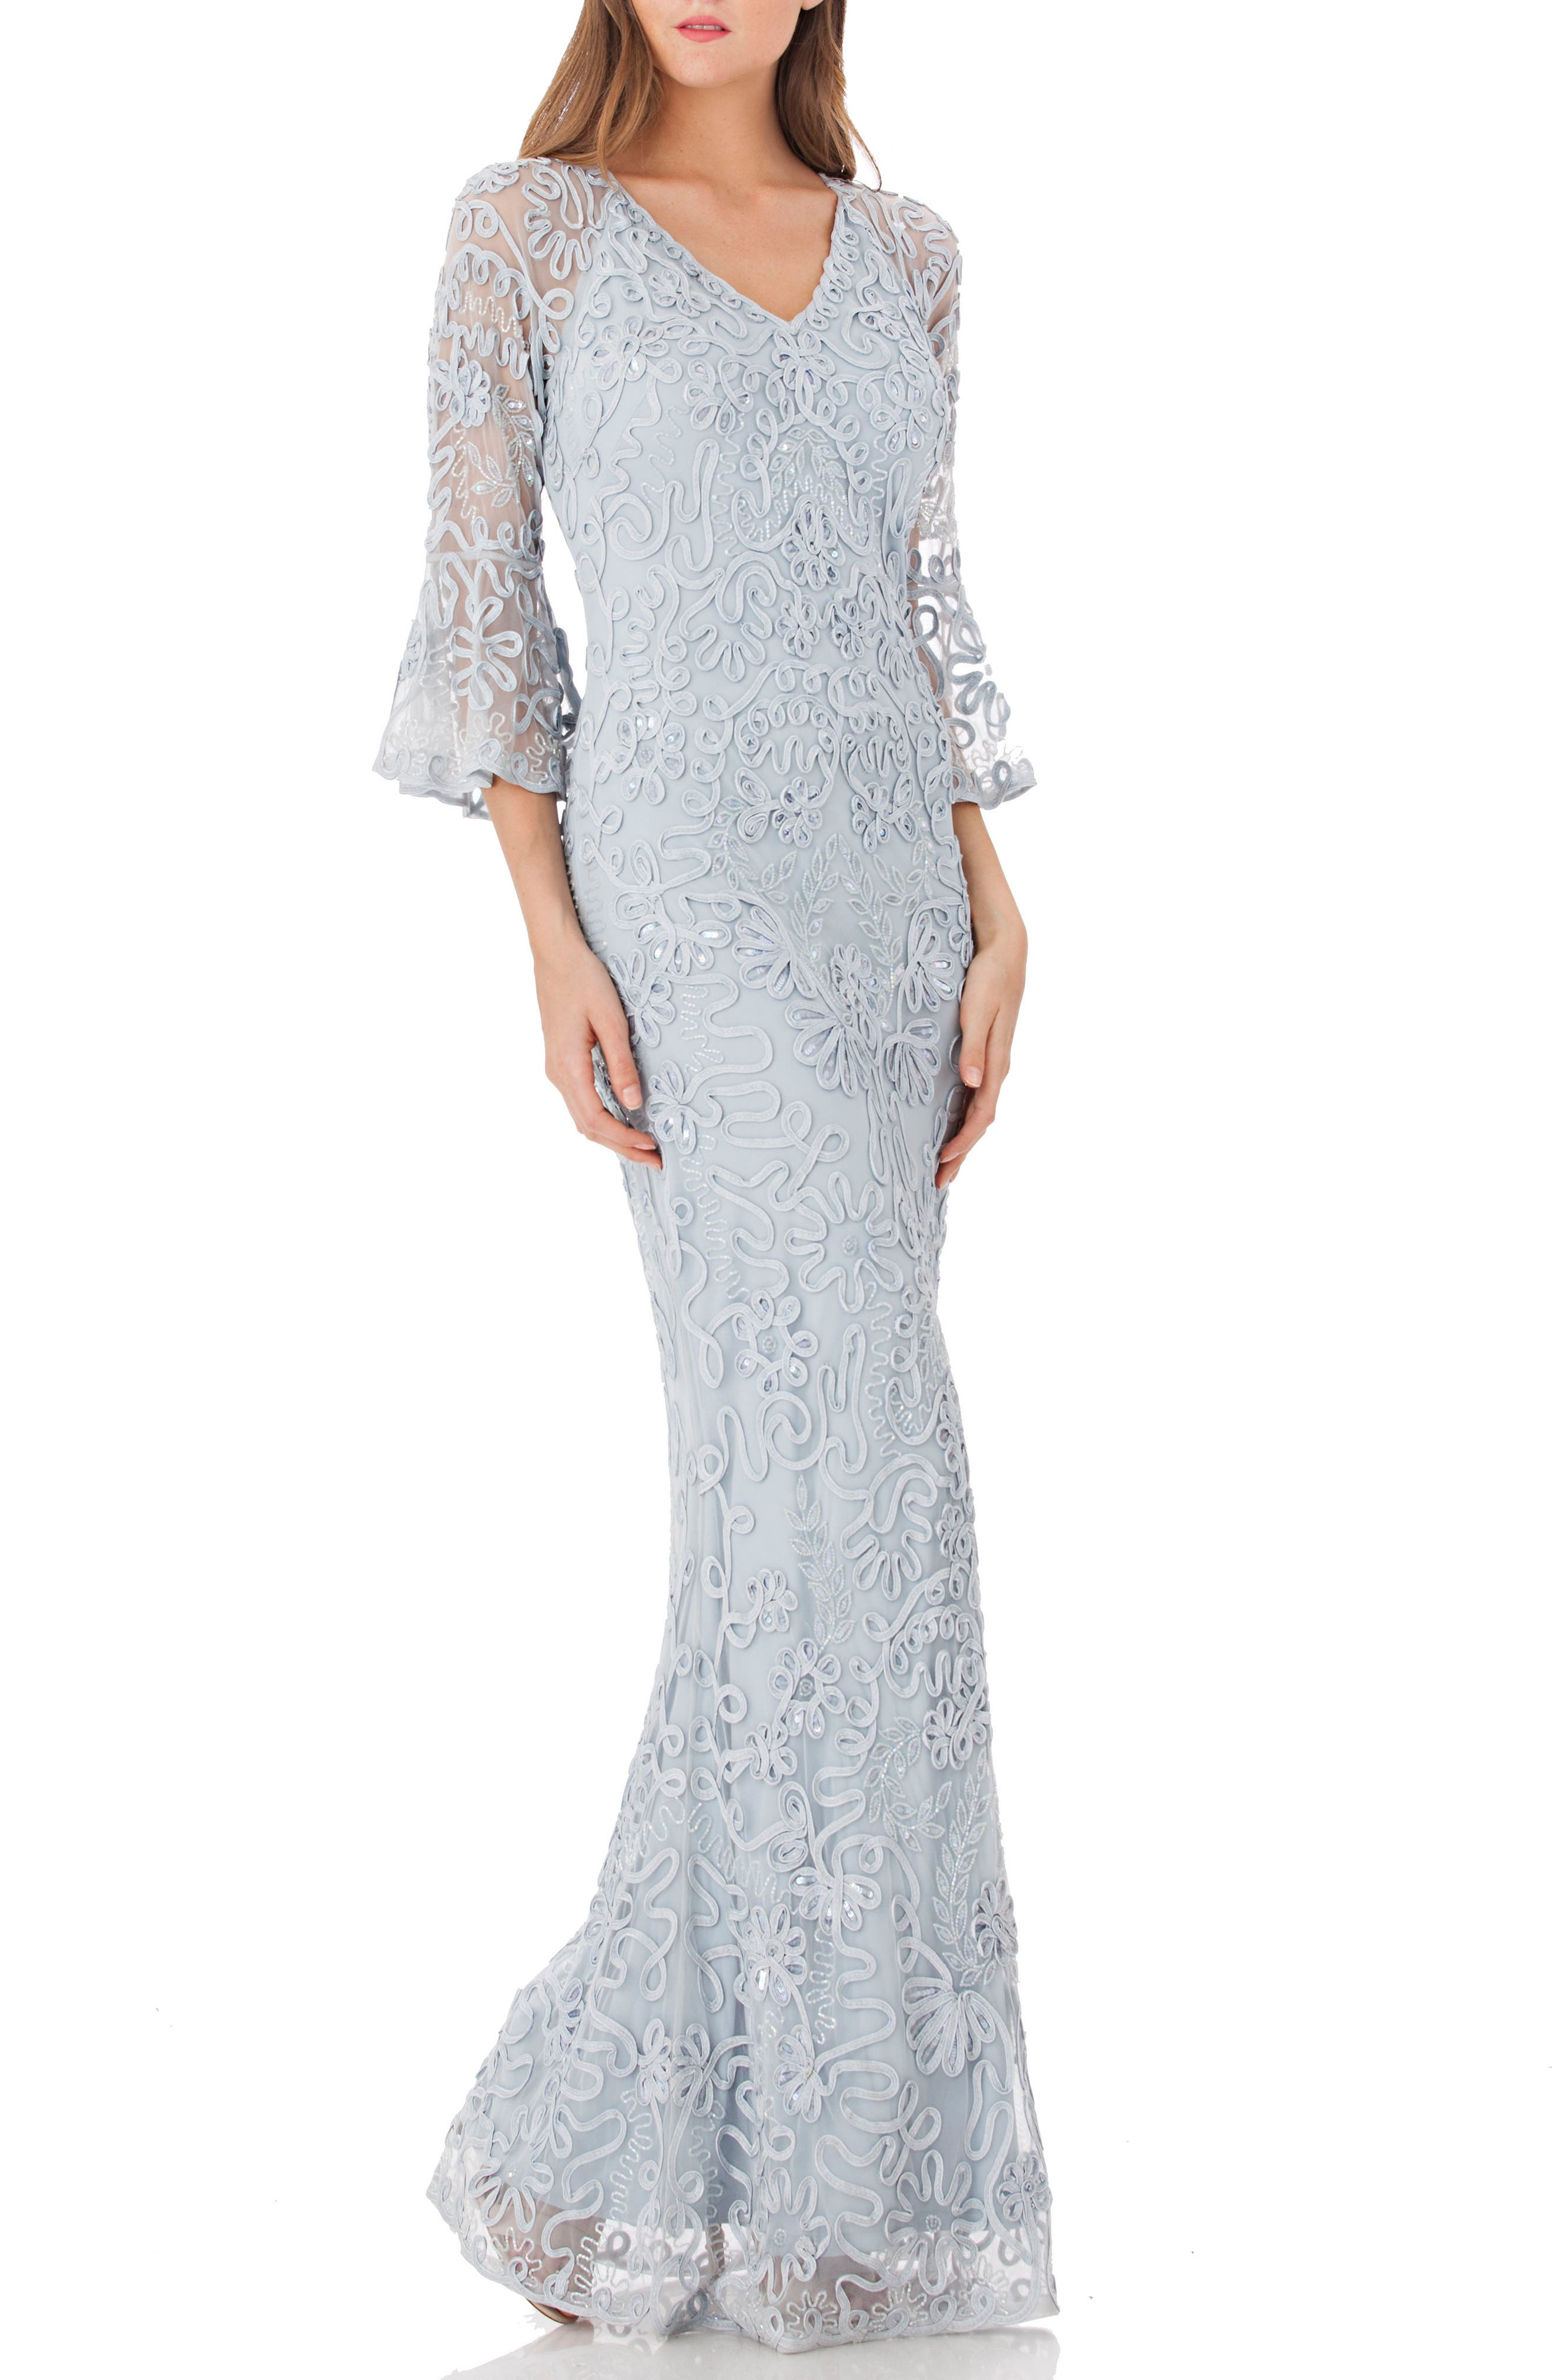 JS COLLECTIONS, Soutache Embroidered Trumpet Gown, Main thumbnail 1, color, 415